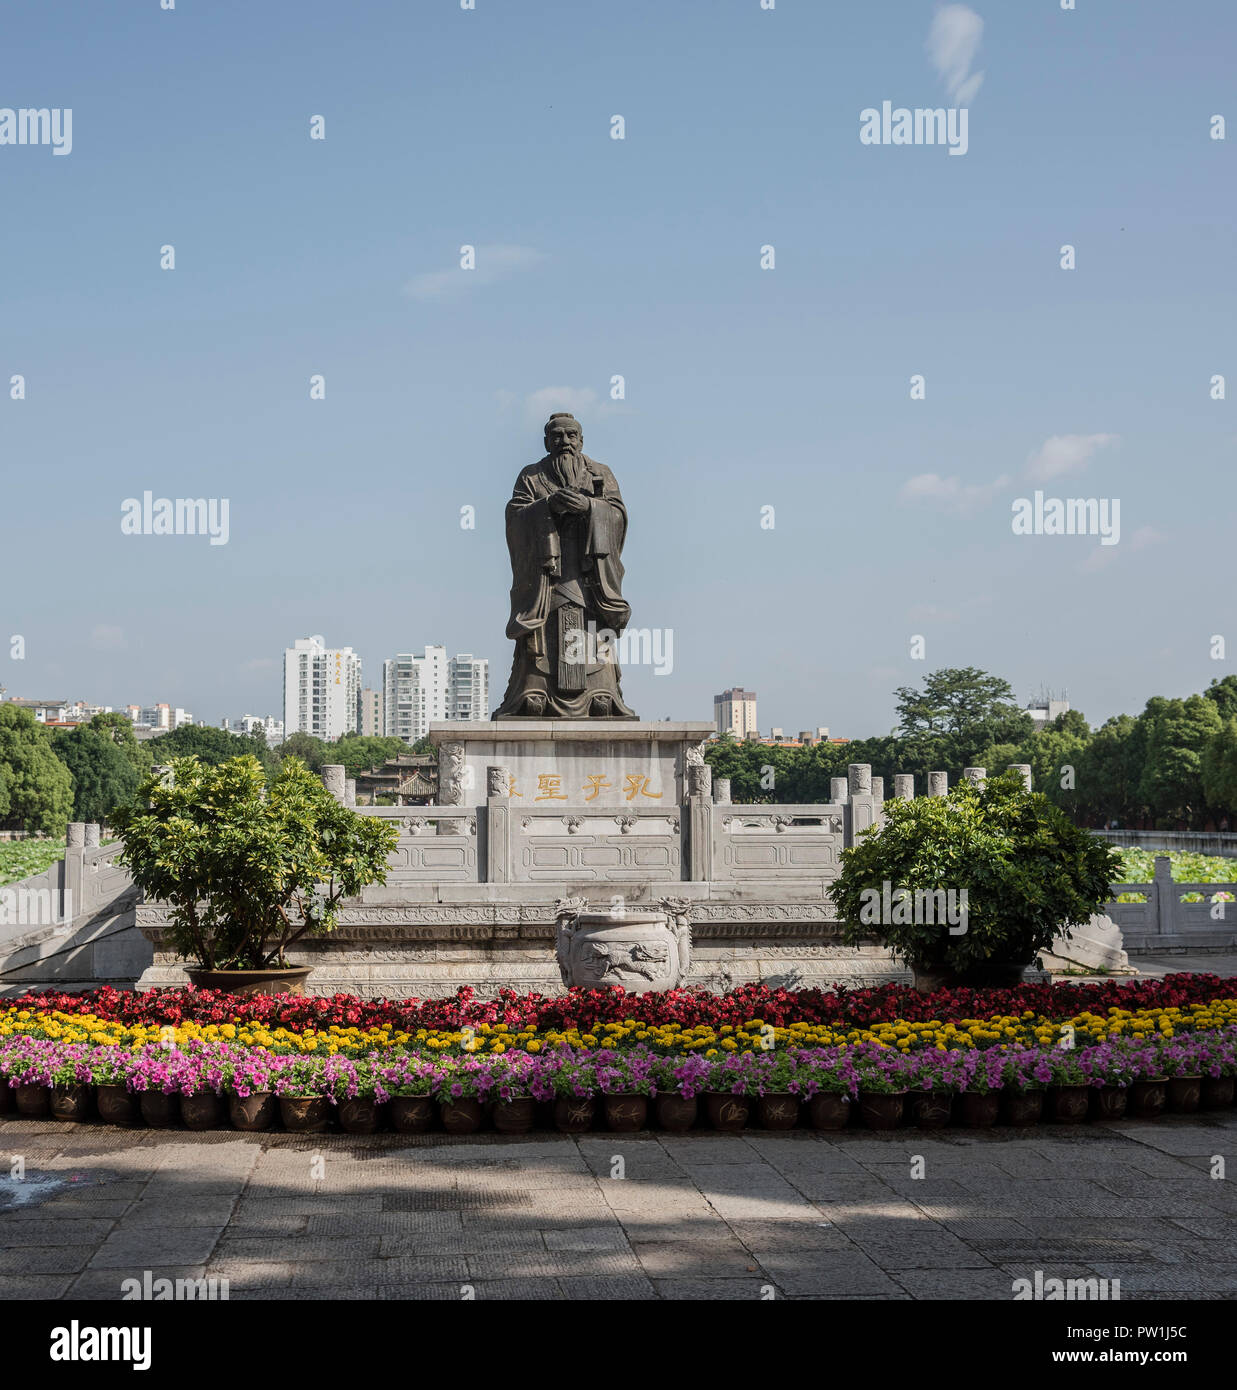 Statue of the great philosopher Confucius at the entrance to the Confucius temple gardens in Jiangshui Kunming. - Stock Image